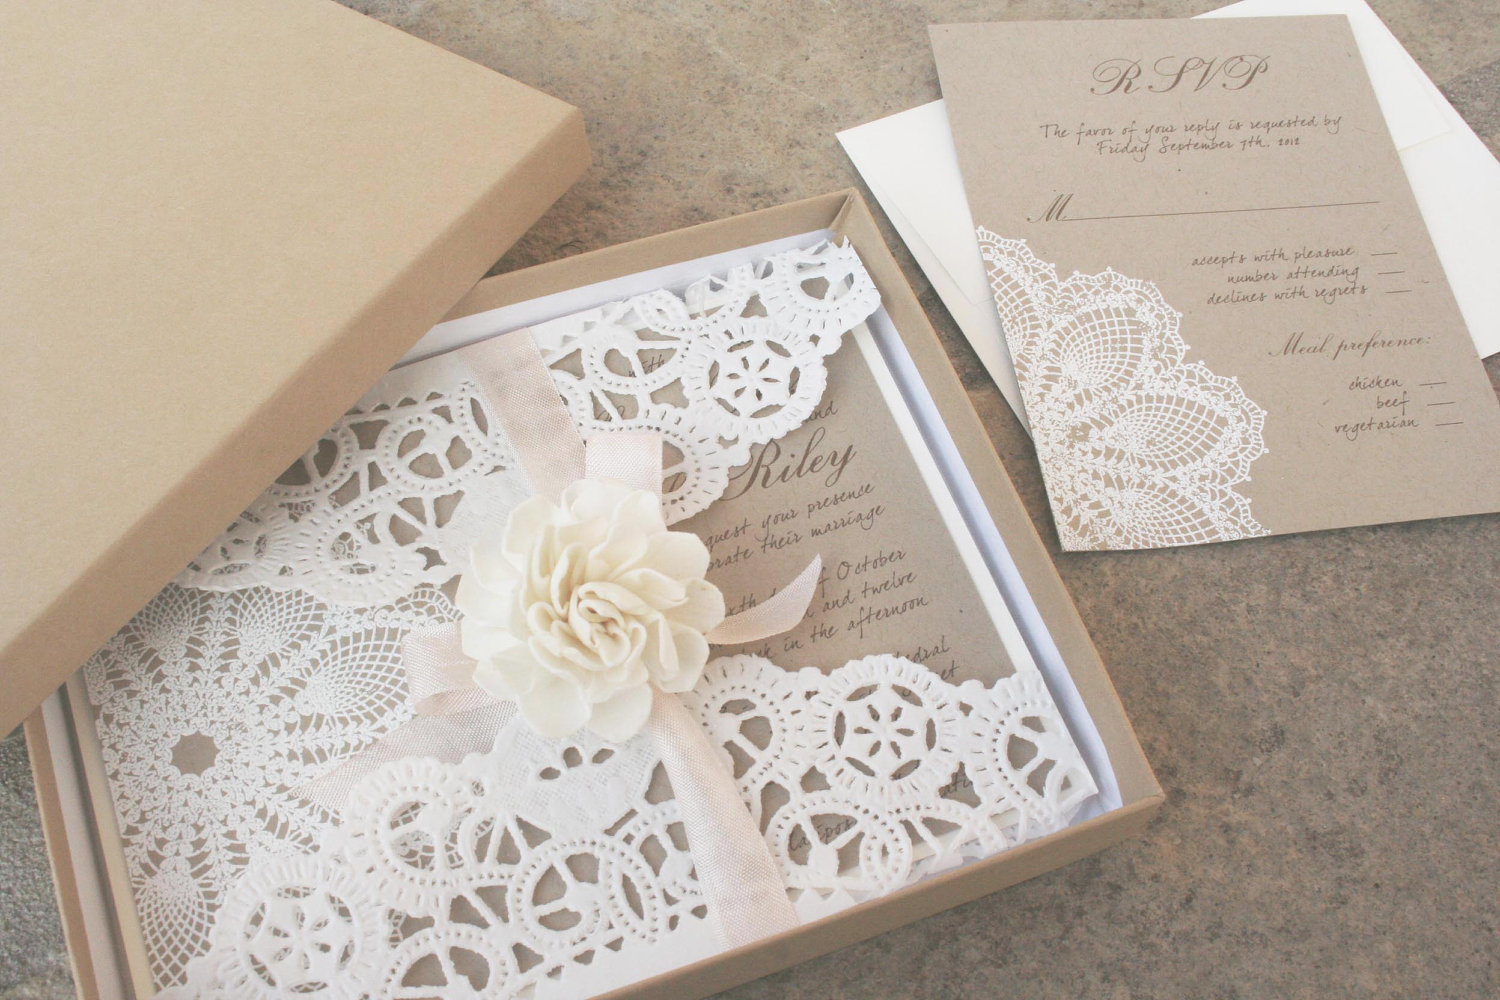 Lillian lace collection lace wedding invitation lillian lace collection lace wedding invitation filmwisefo